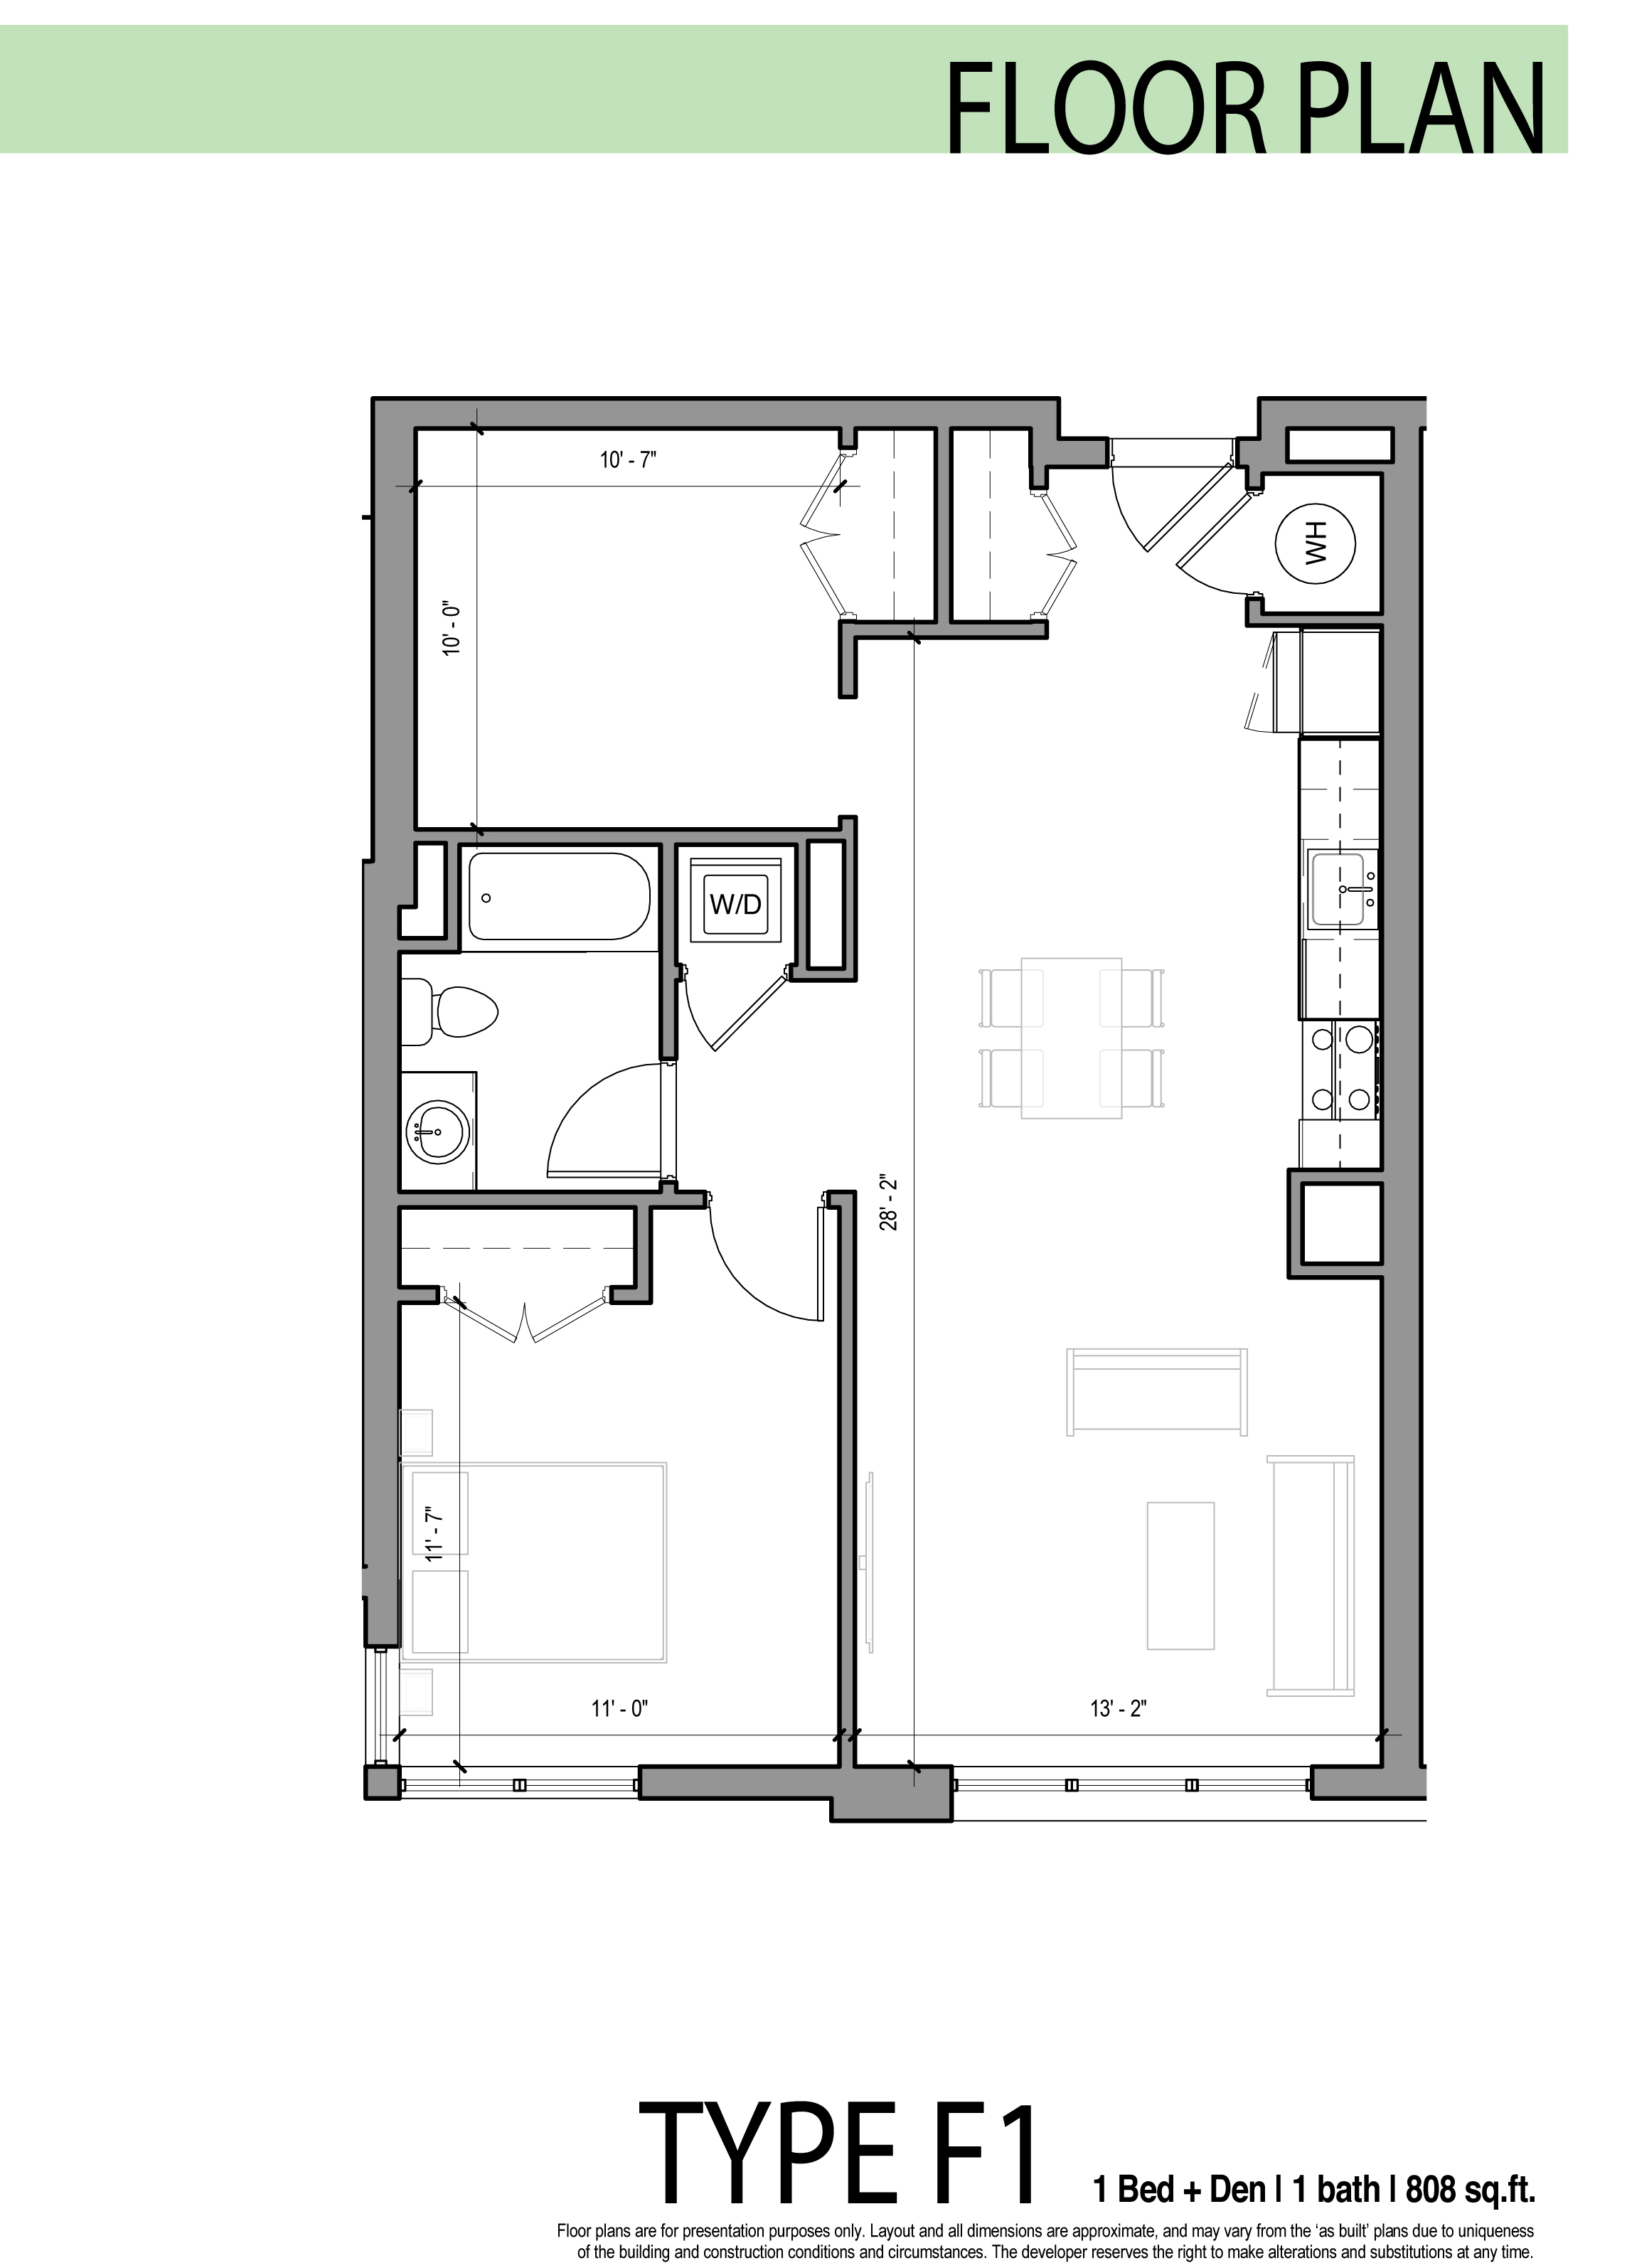 Edge allston floor plans for Floor plans with photos